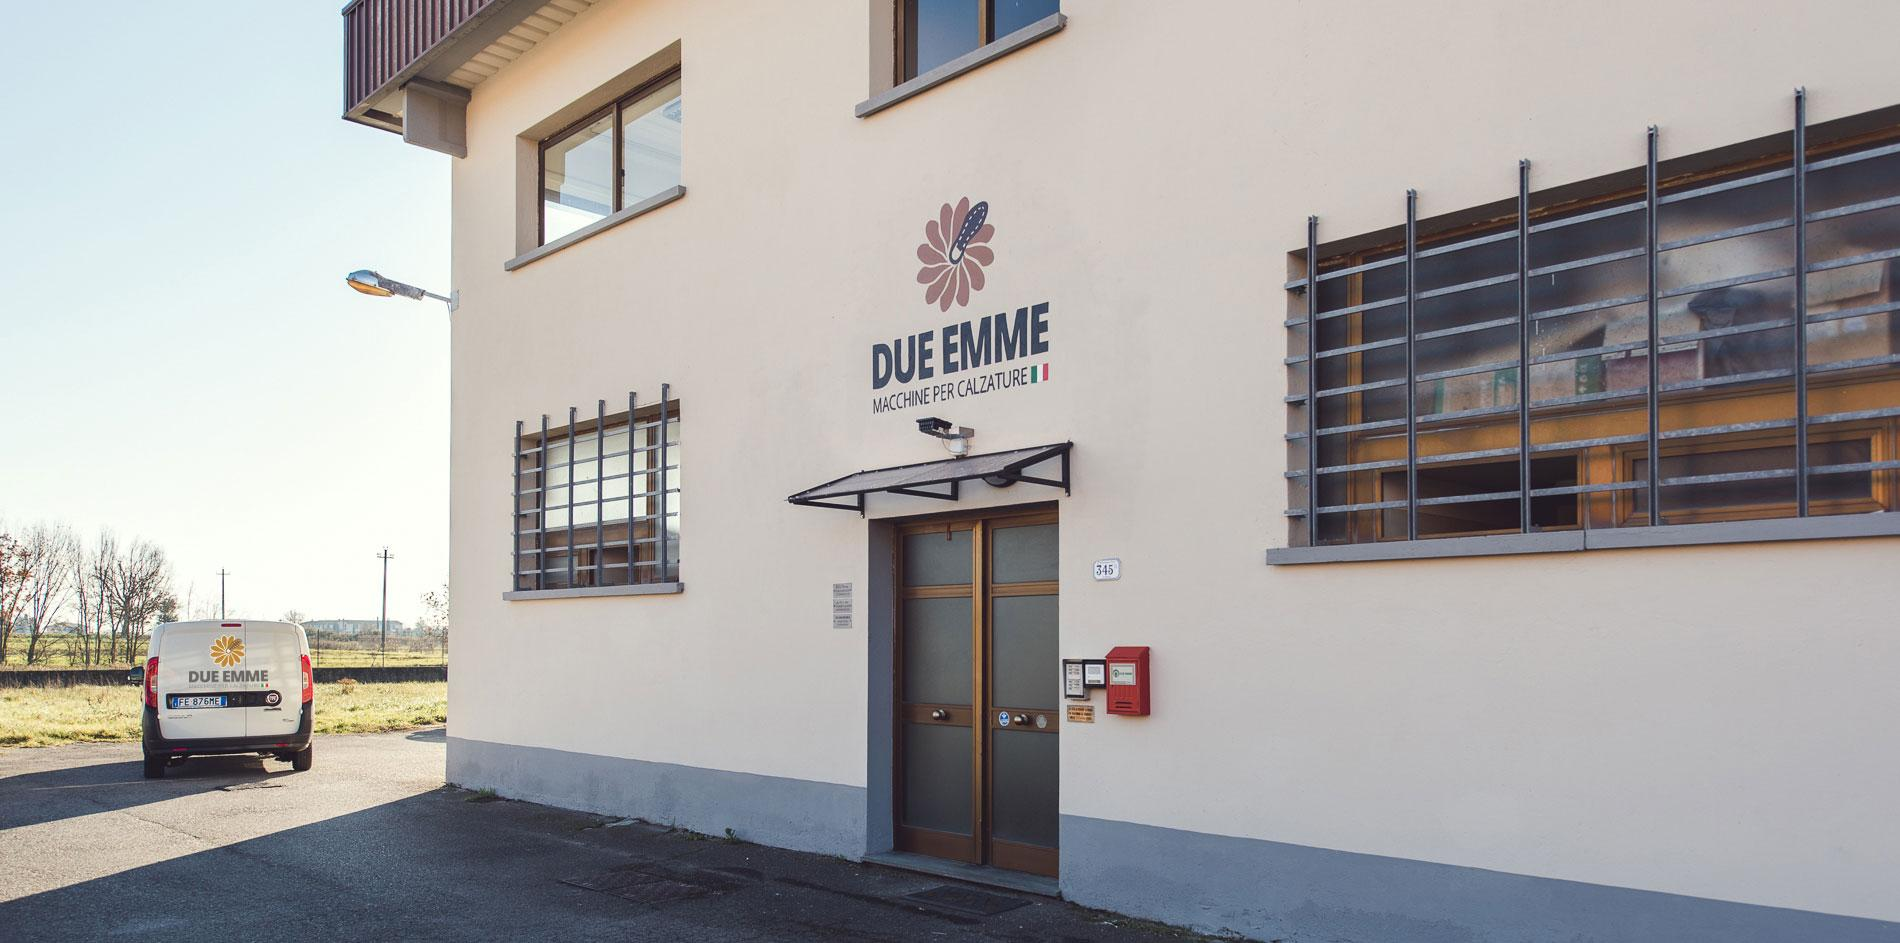 Fronte dell'edificio di Due Emme Srl.